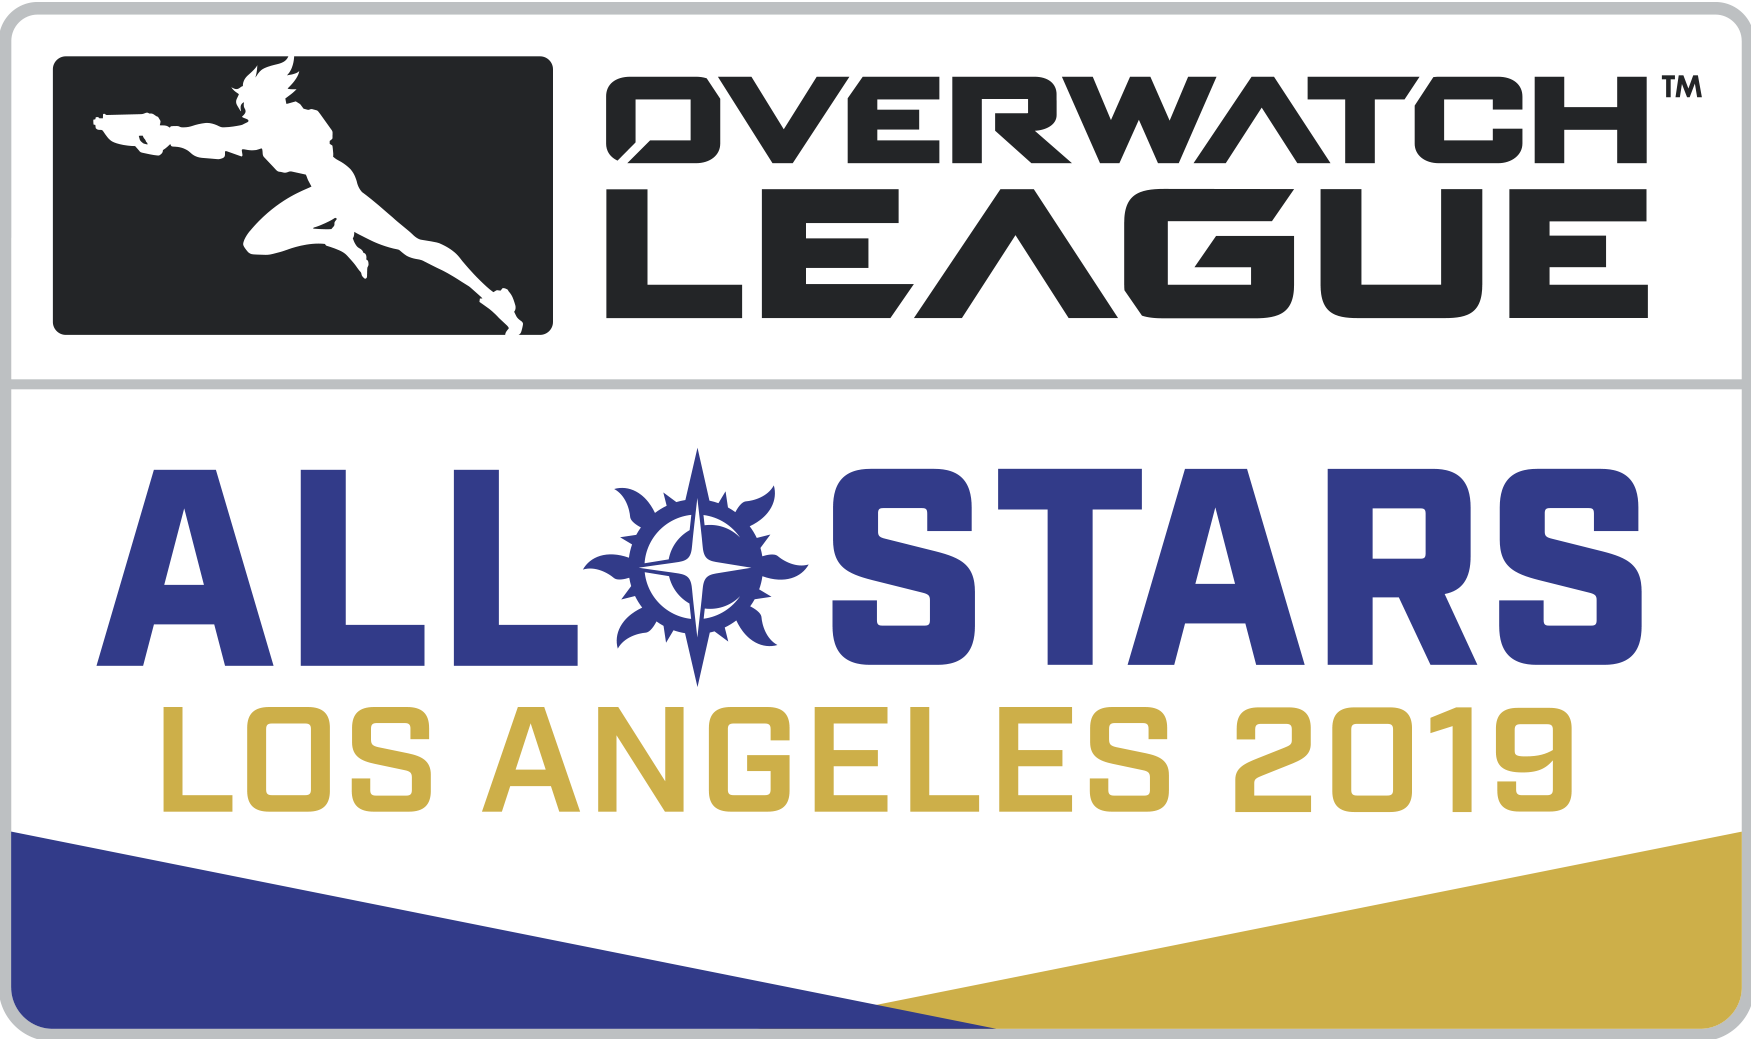 The Overwatch League.